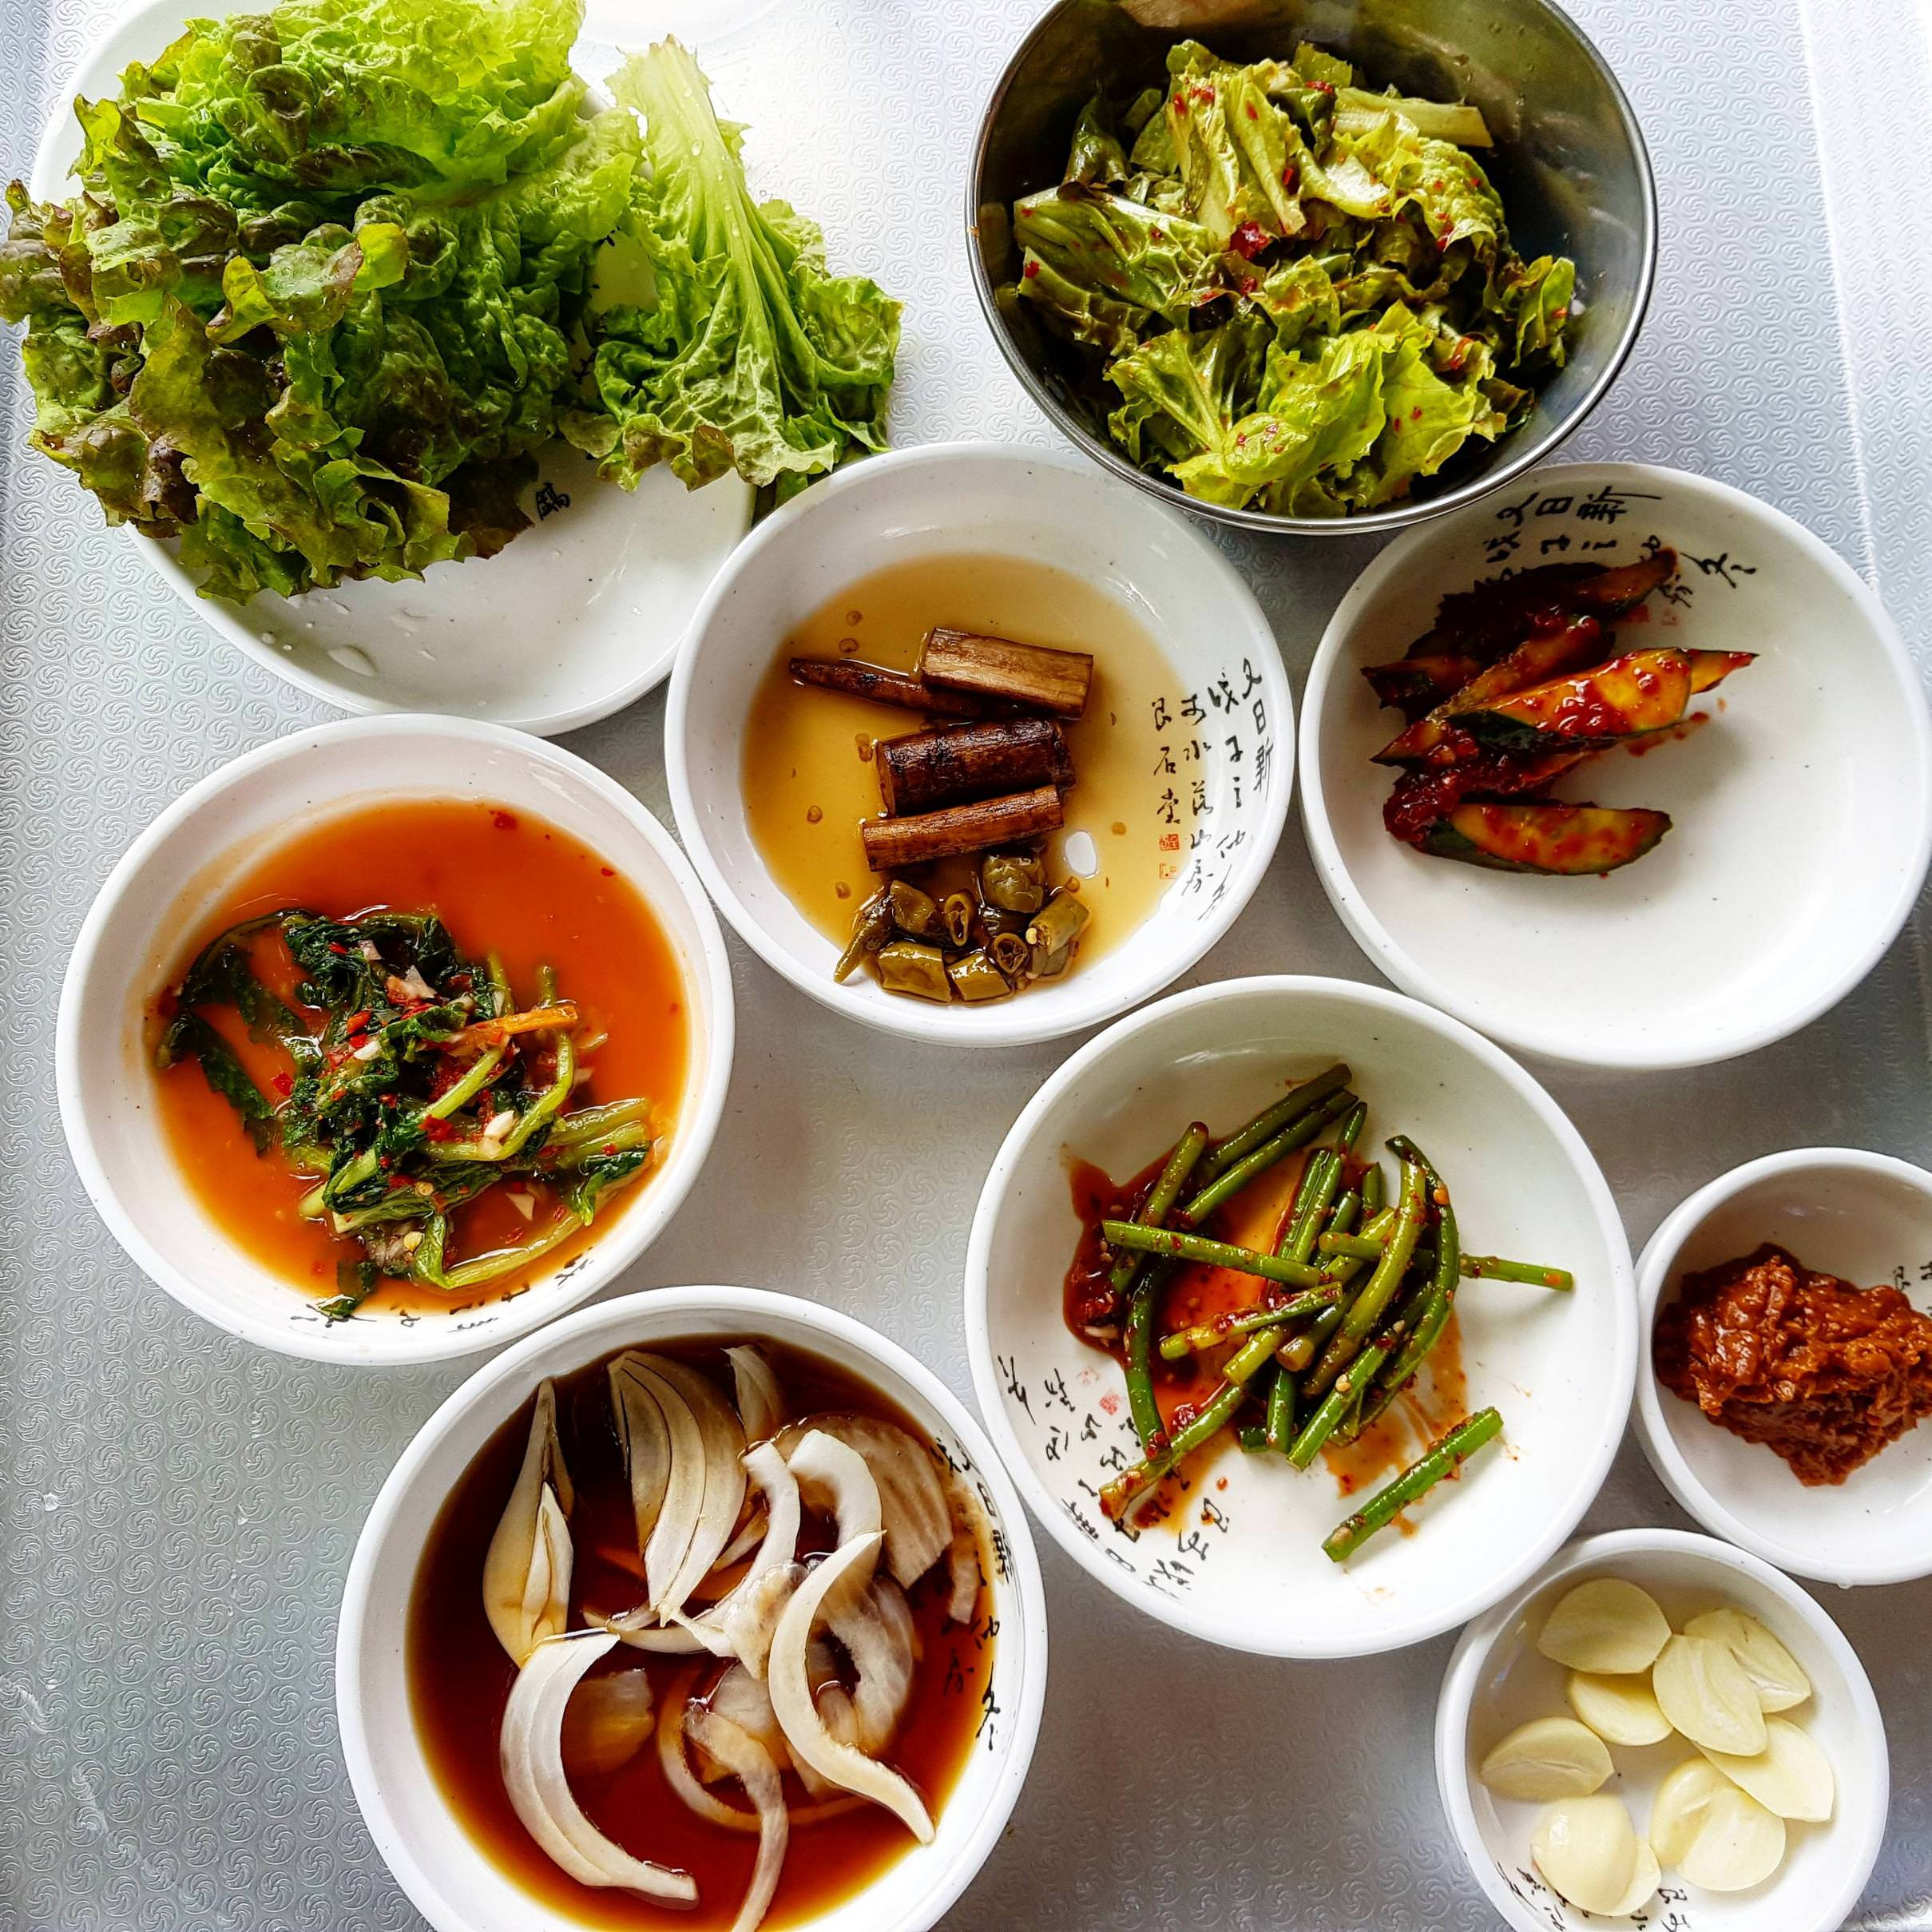 Korean Banchan Side Dishes